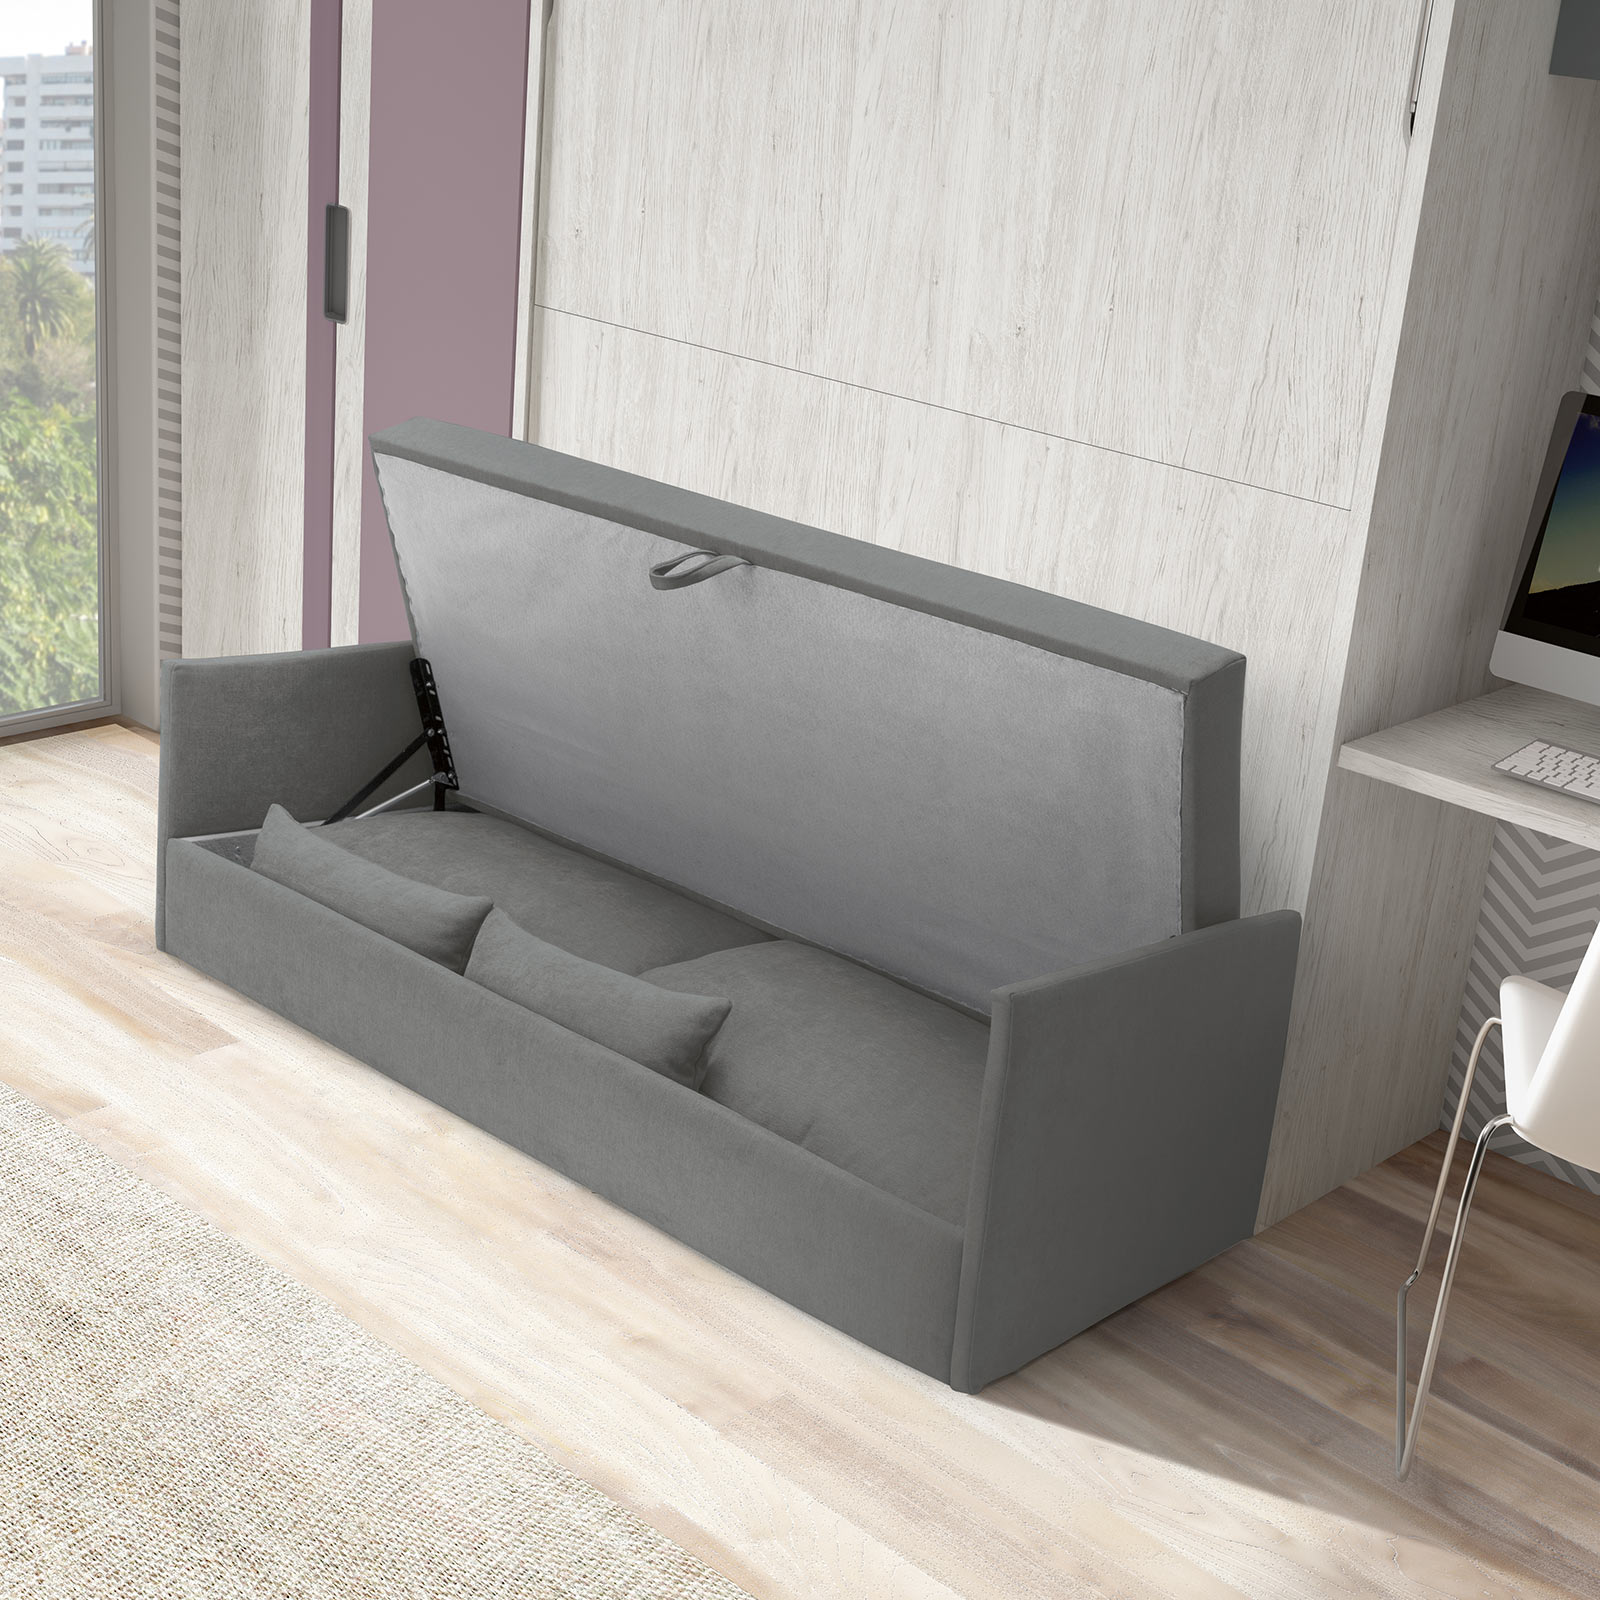 Amazing Space Sofa Wallbed The London Wallbed Company Machost Co Dining Chair Design Ideas Machostcouk